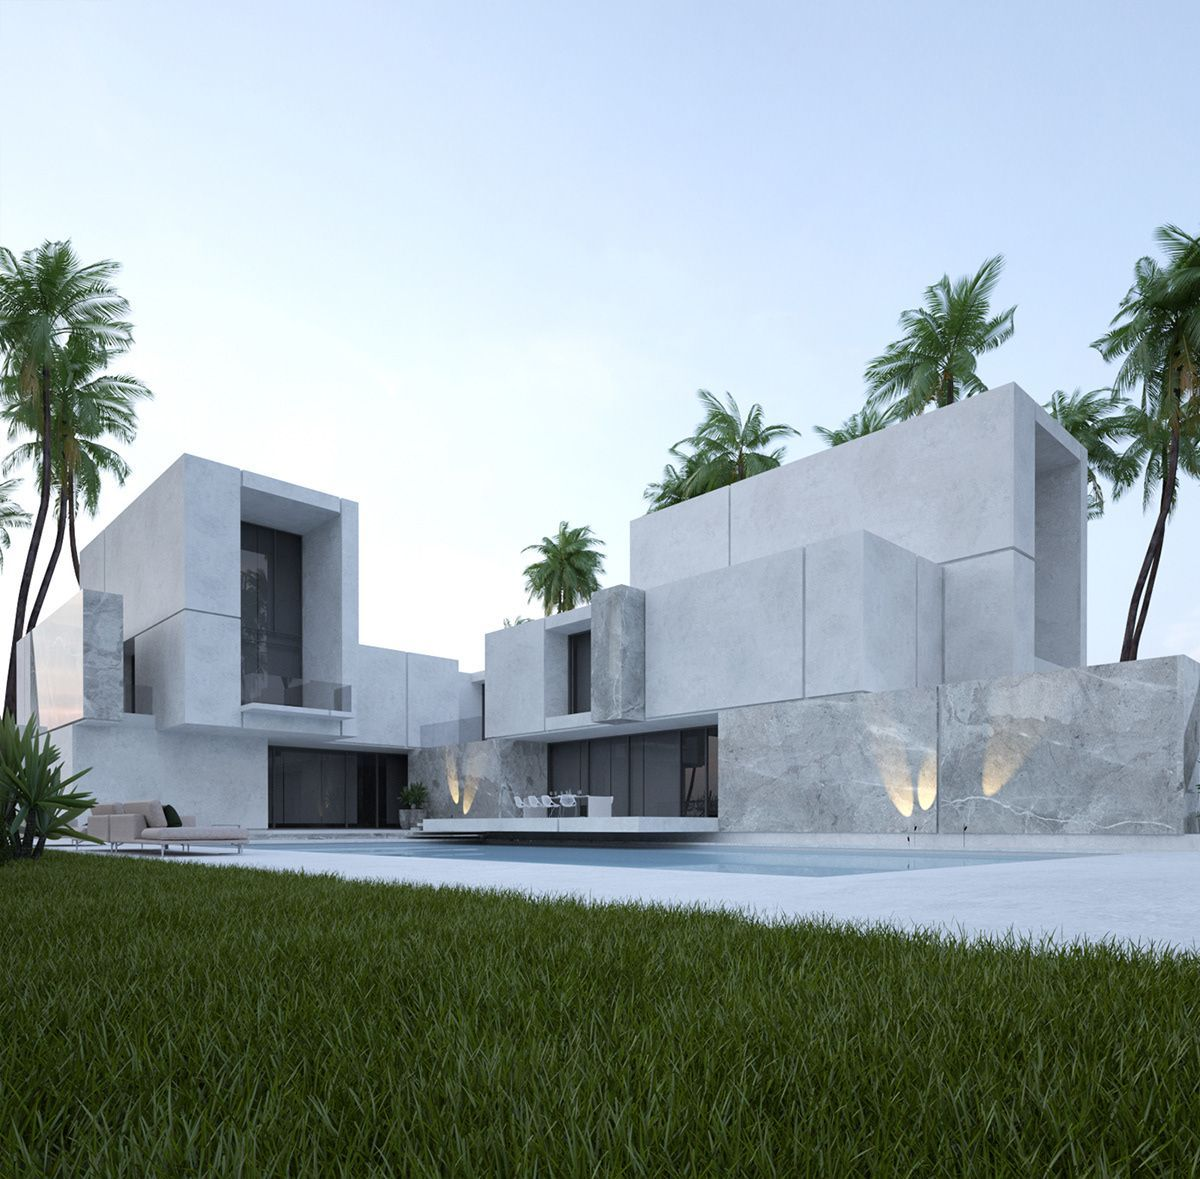 20 Best Of Minimalist House Designs Simple Unique And Modern House Architecture Design Luxury Exterior Interior Architecture Design